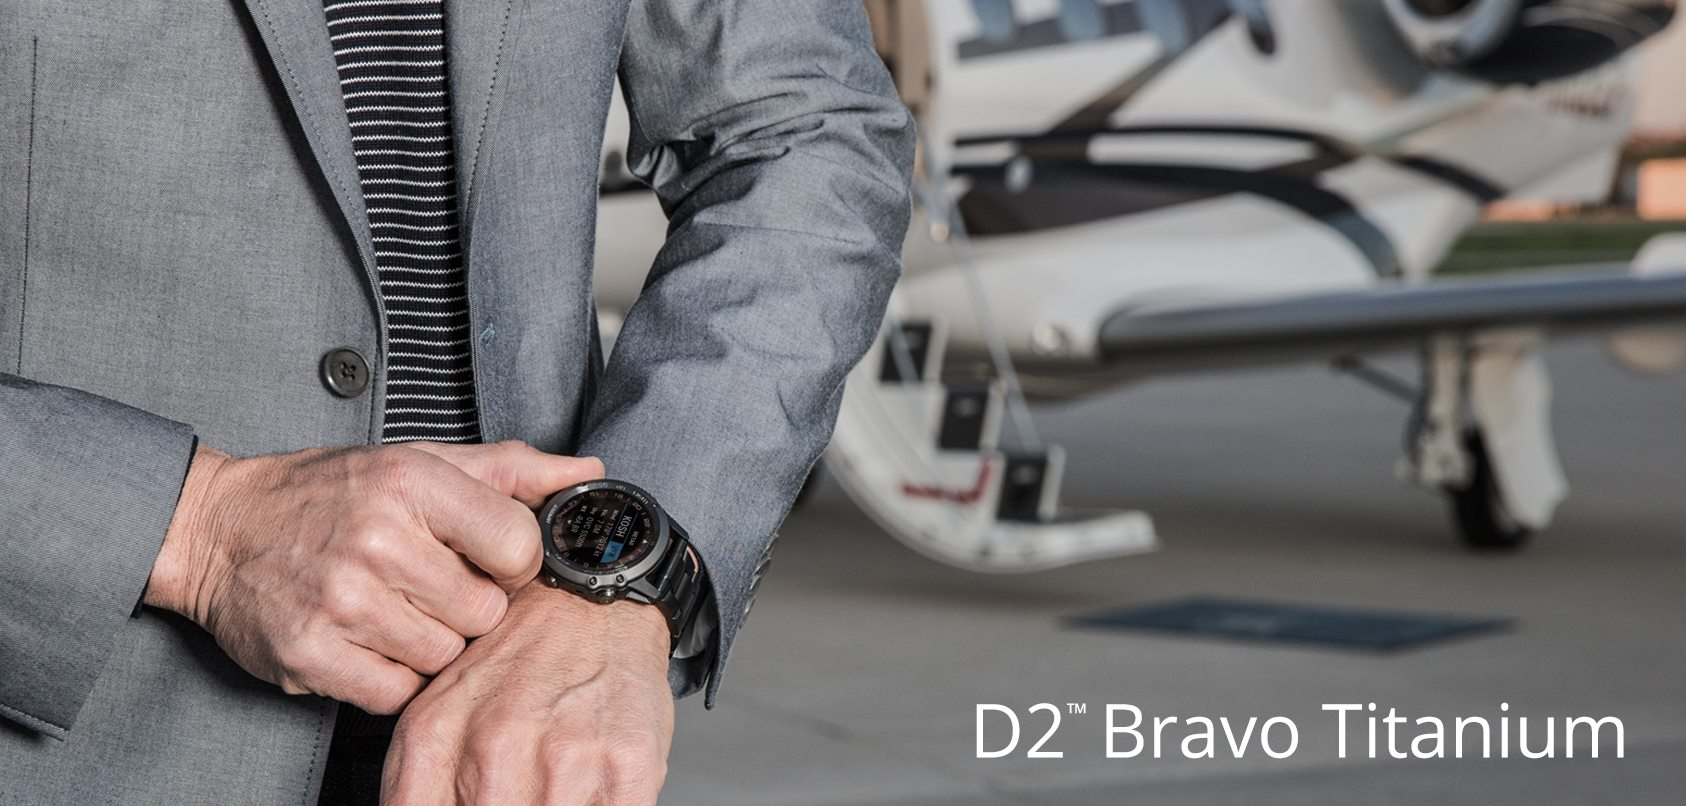 Garmin D2 Bravo Titanium Aviator Watch